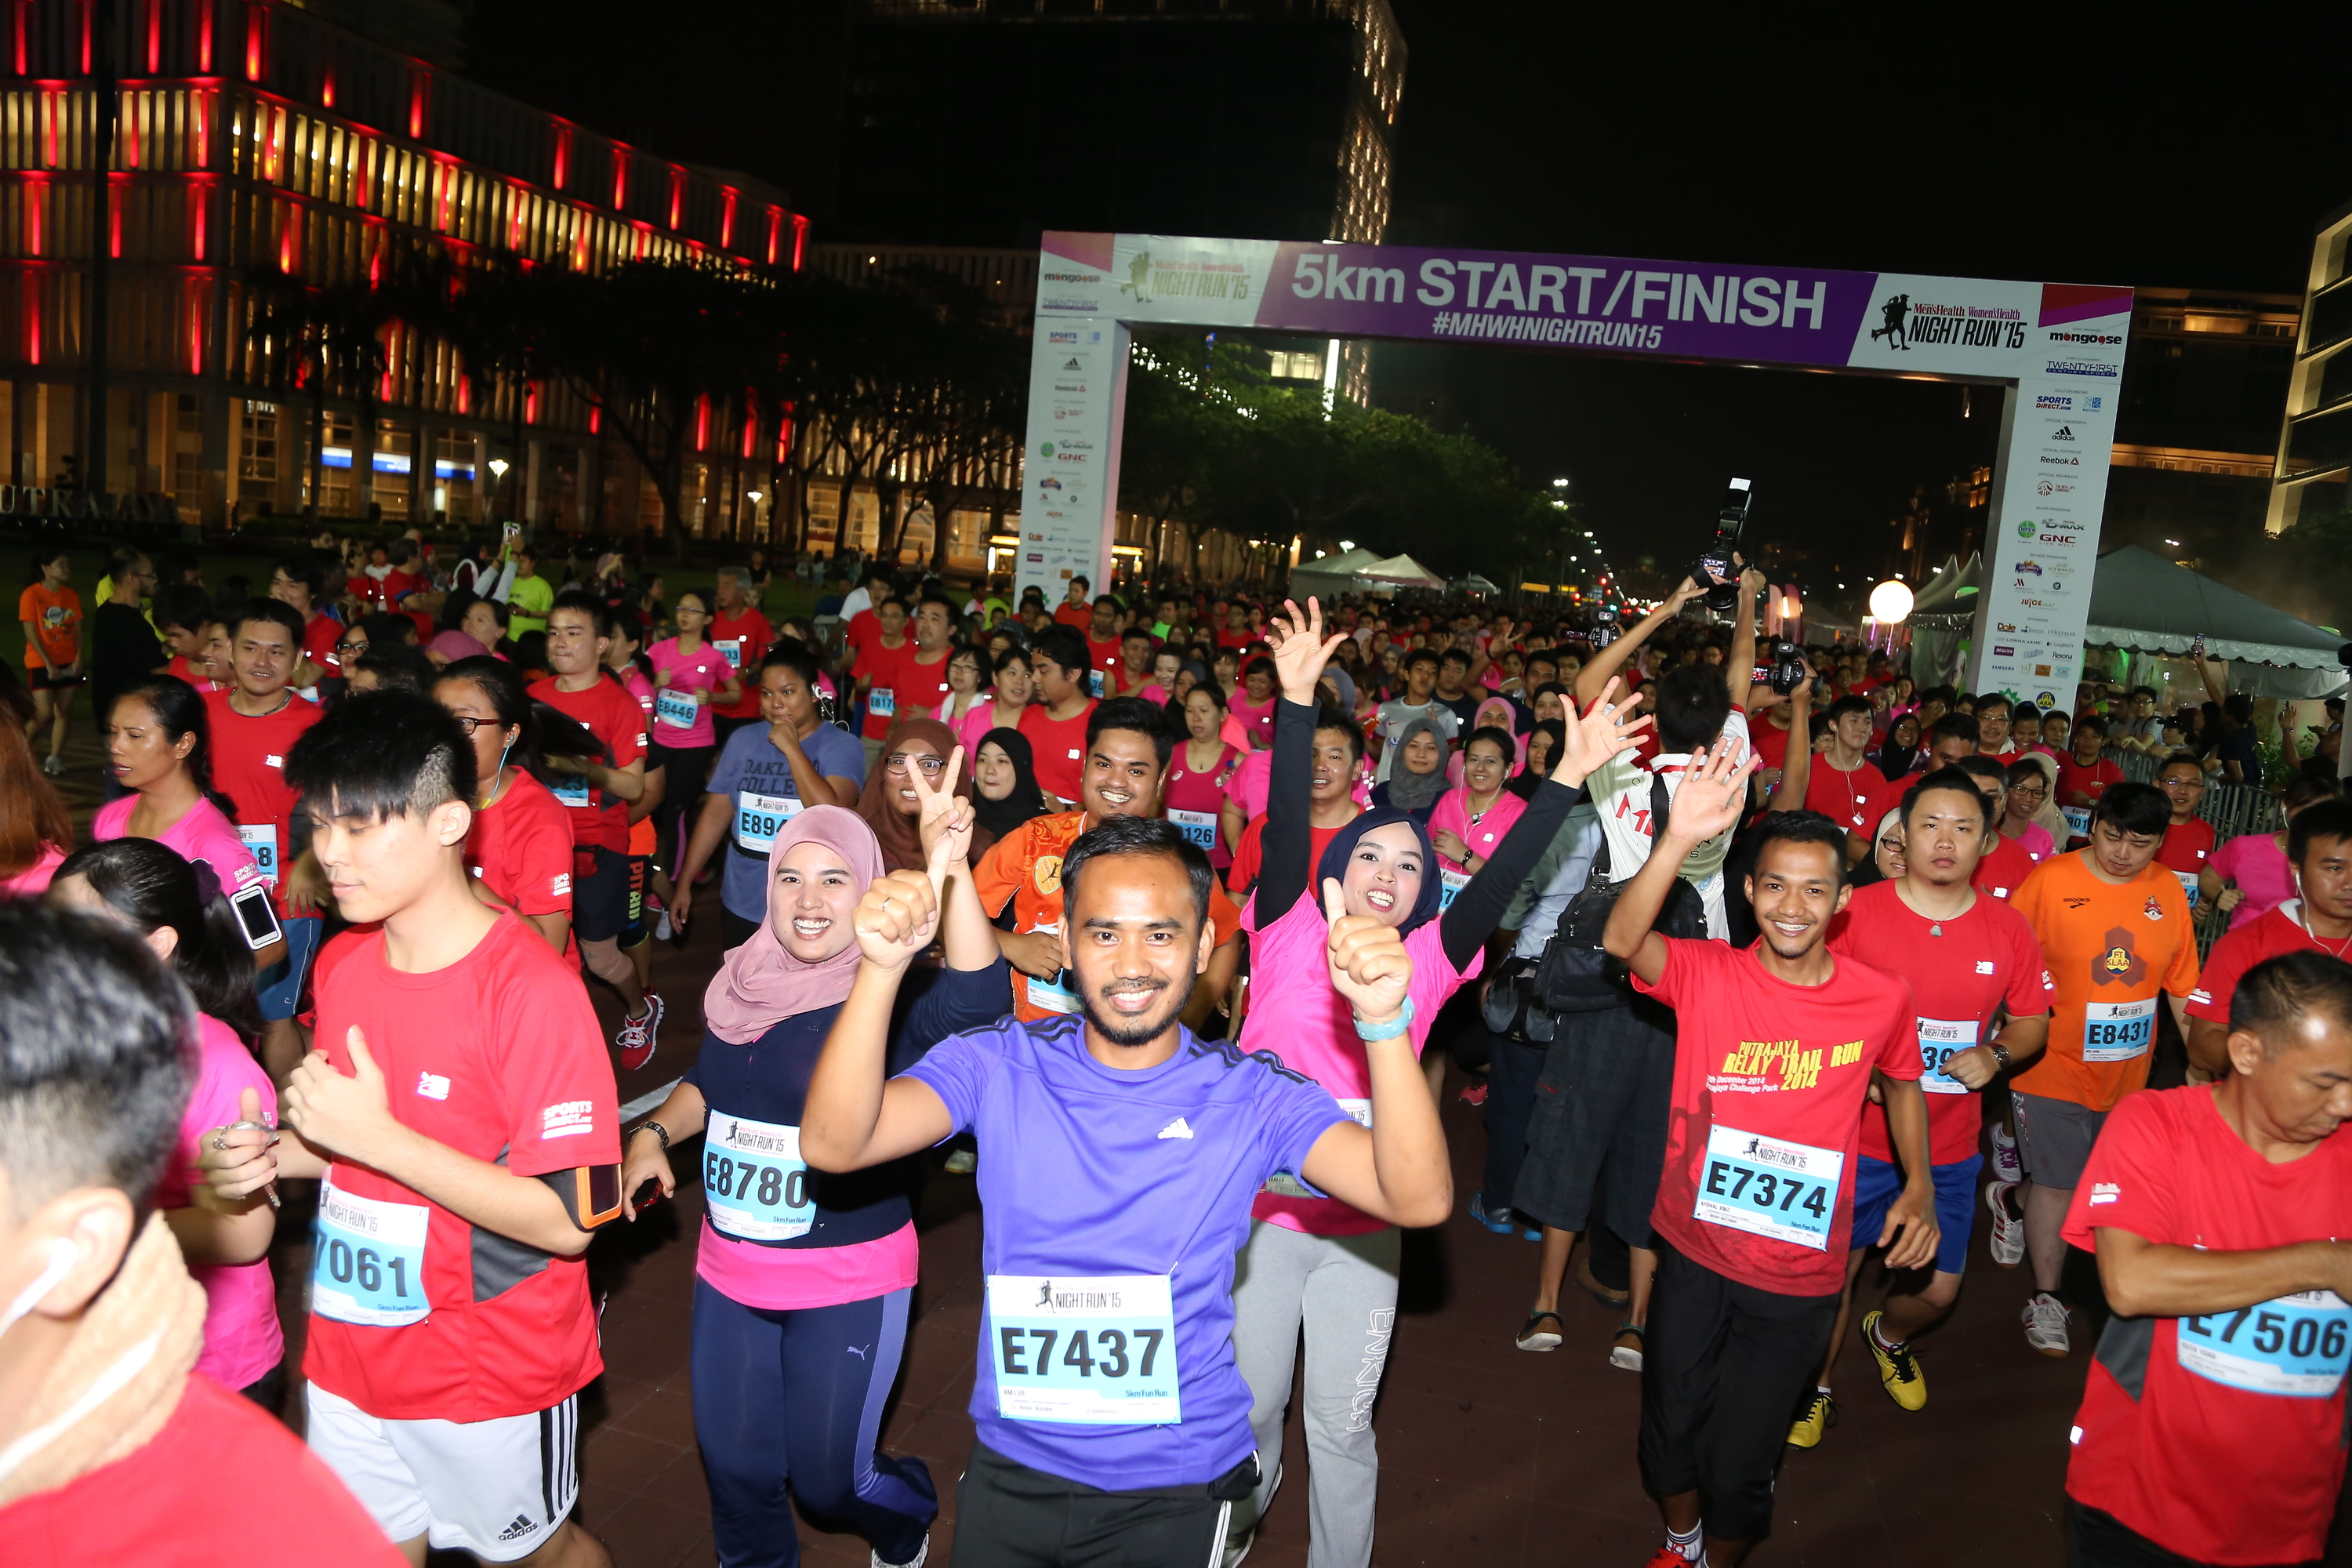 The best runs in KL this year